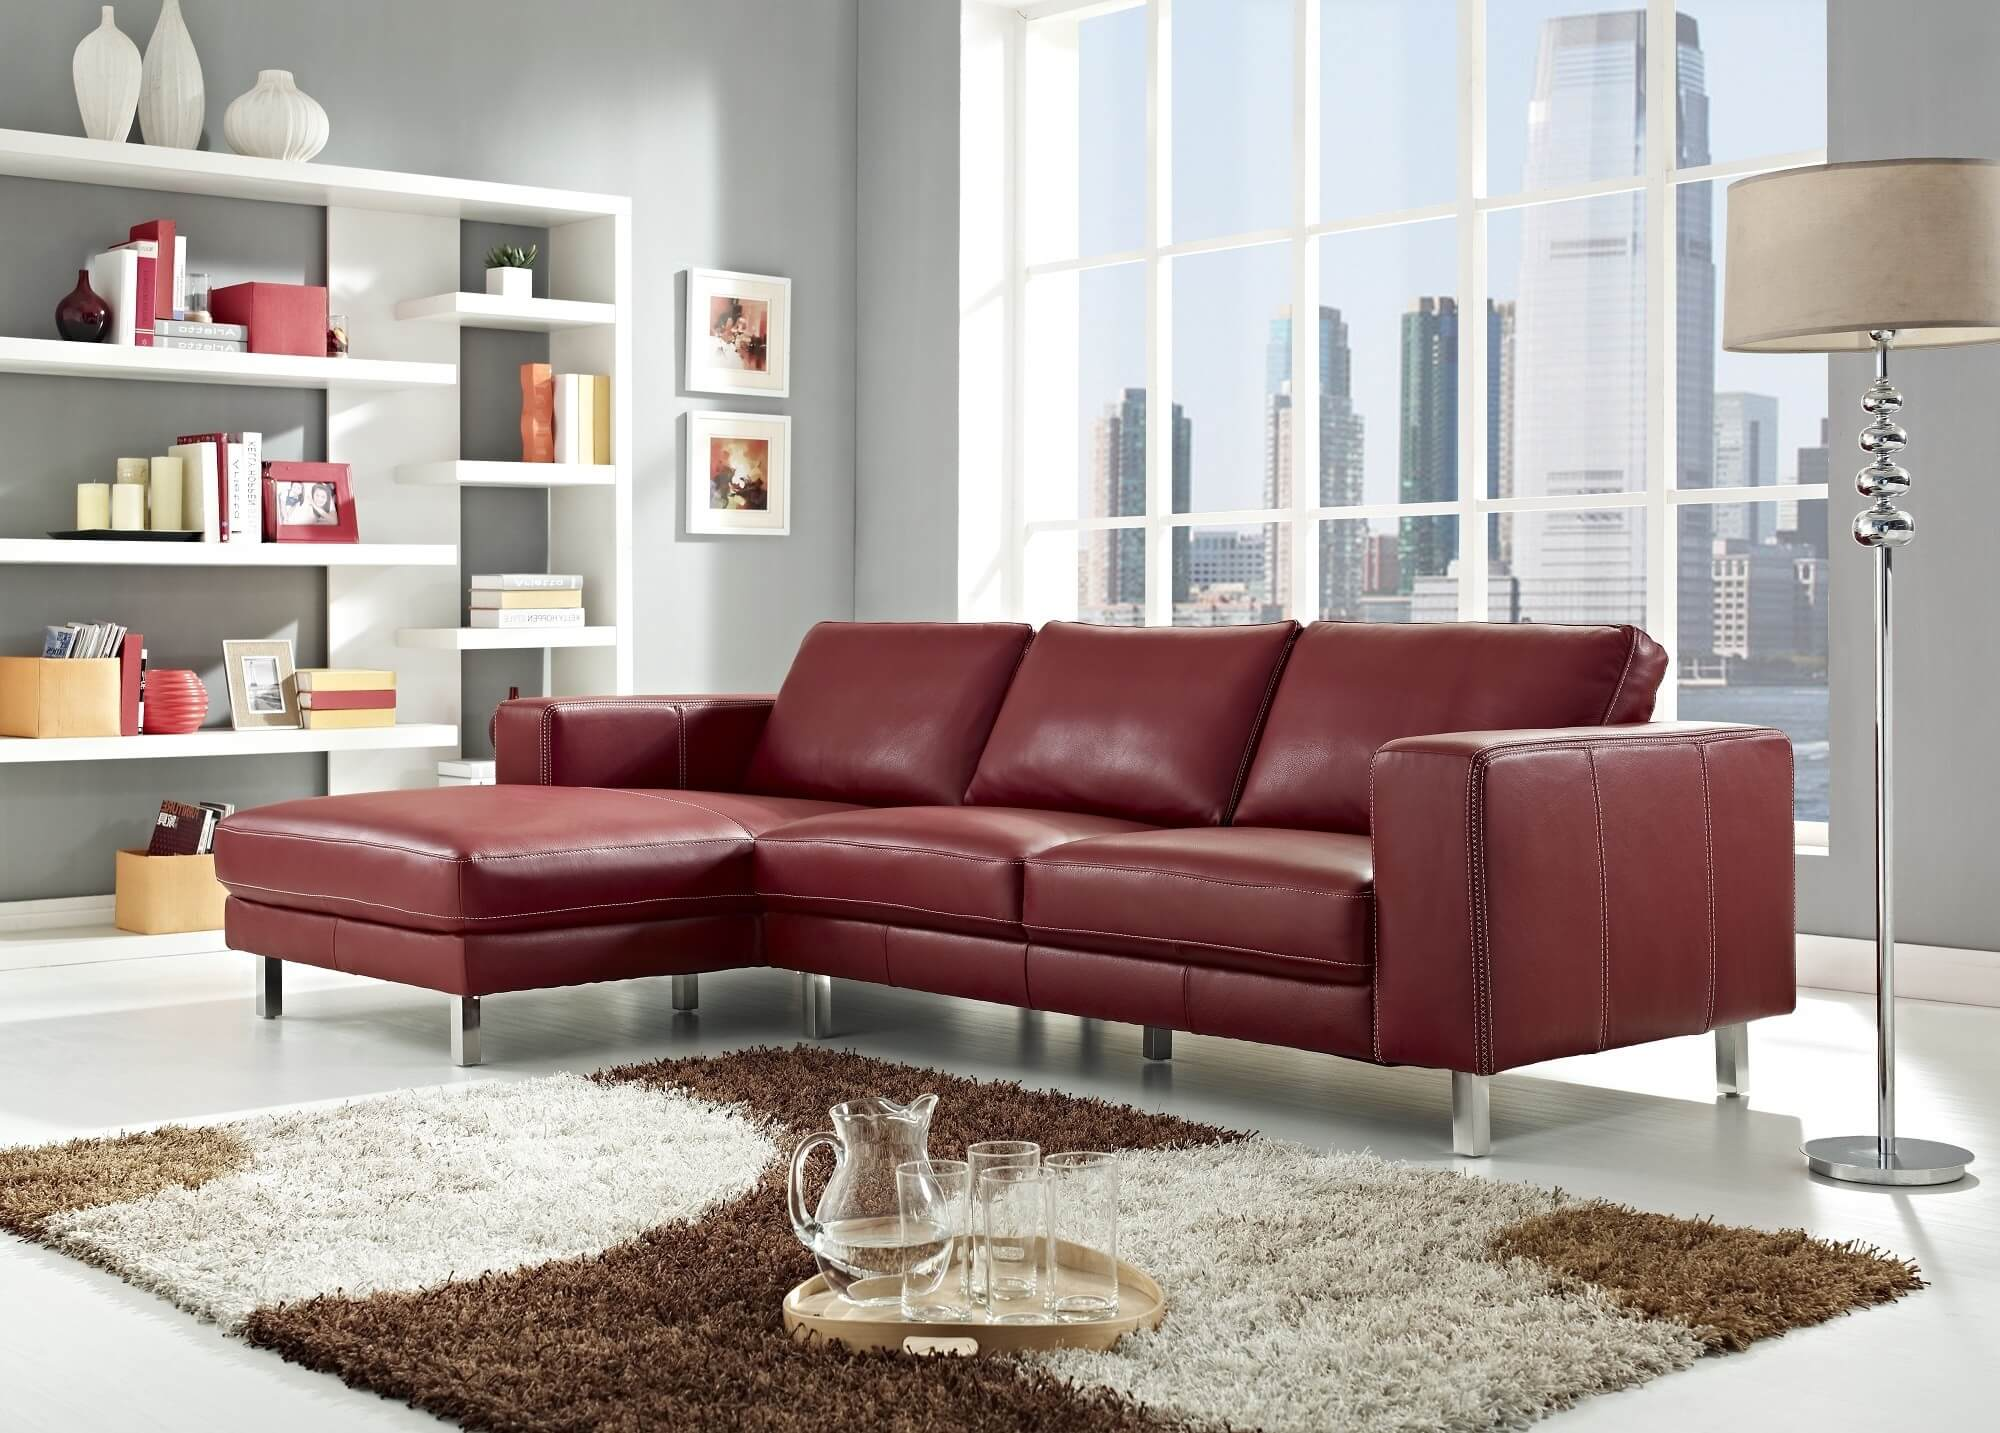 Elegant leather modern red sectional sofa